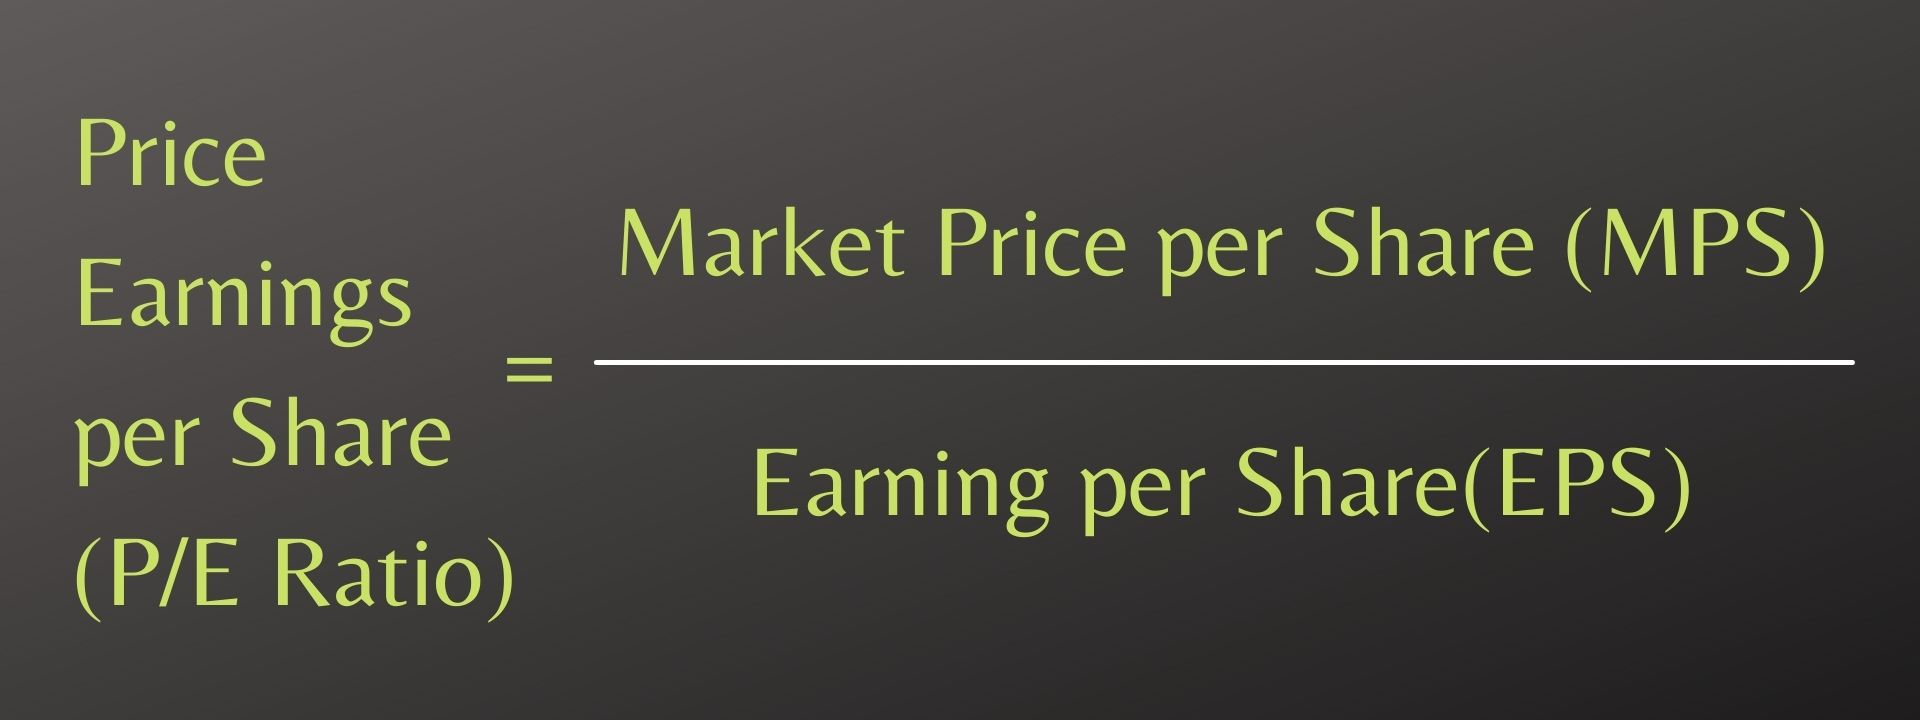 Price Earnings per Share (P_E Ratio)